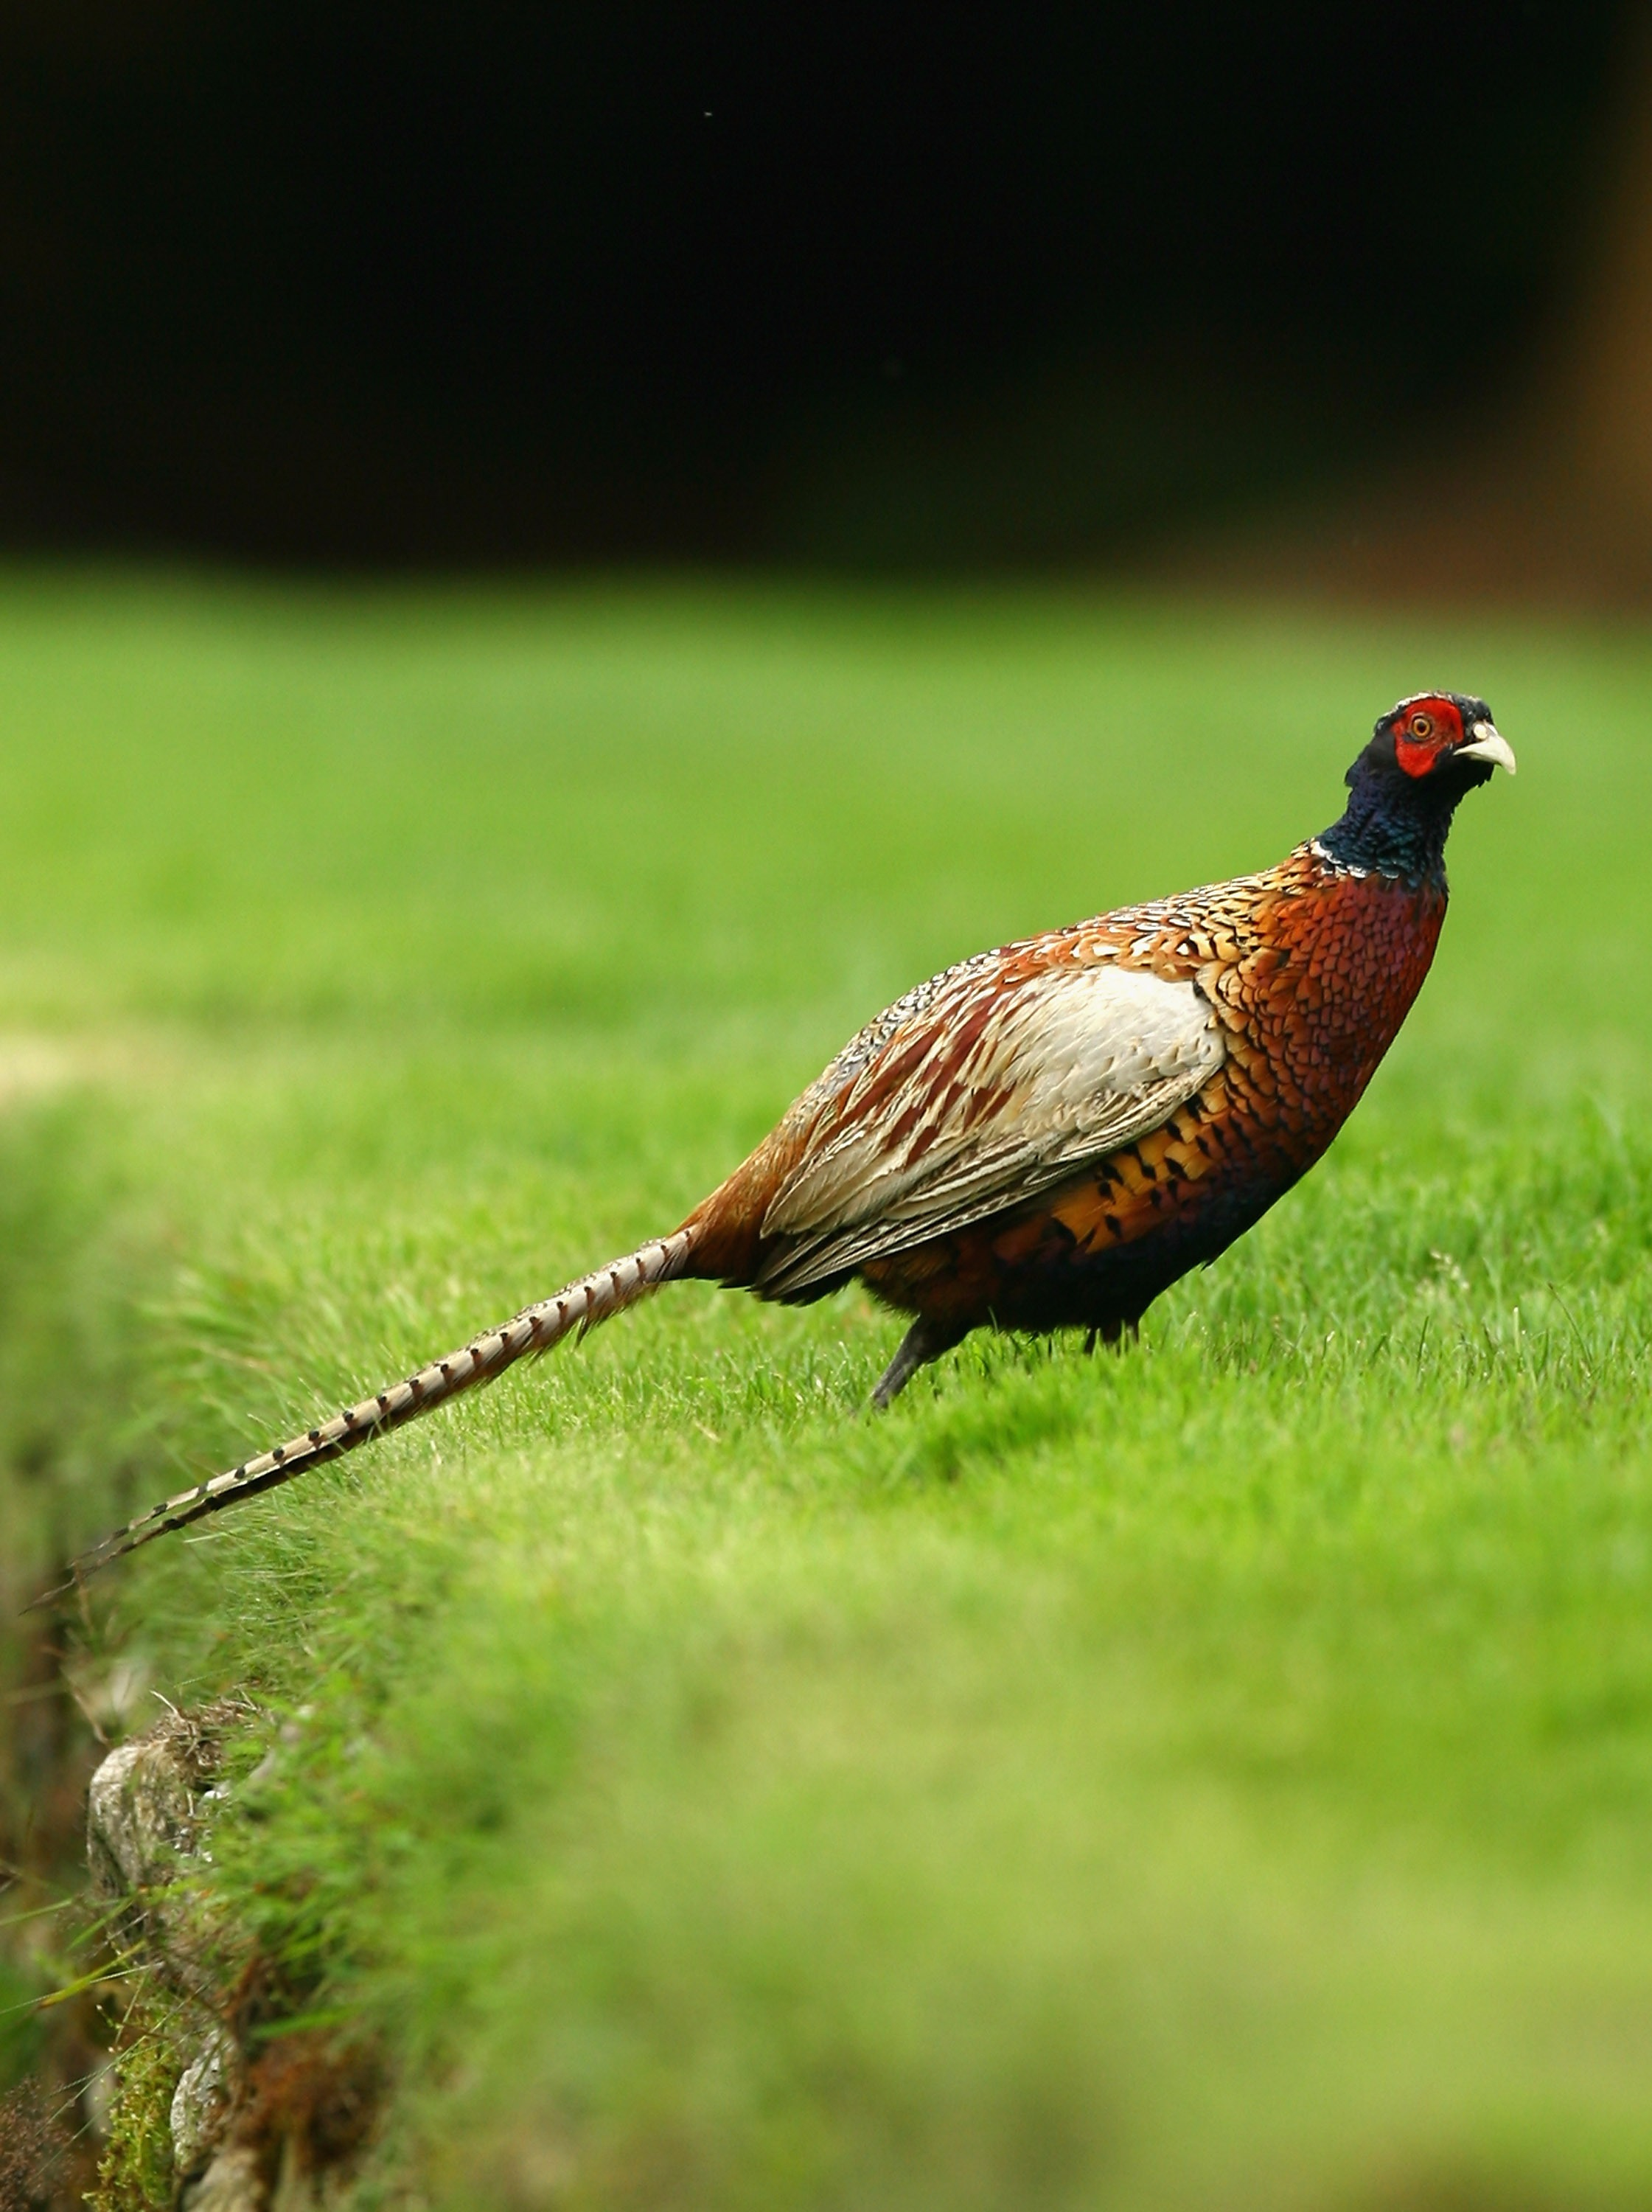 LUSS, UNITED KINGDOM - JULY 13:  A pheasant has an afternoon stroll during the second round of The Barclays Scottish Open at Loch Lomond Golf Club on July 13, 2007 in Luss, Scotland. (Photo by Ian Walton/Getty Images)